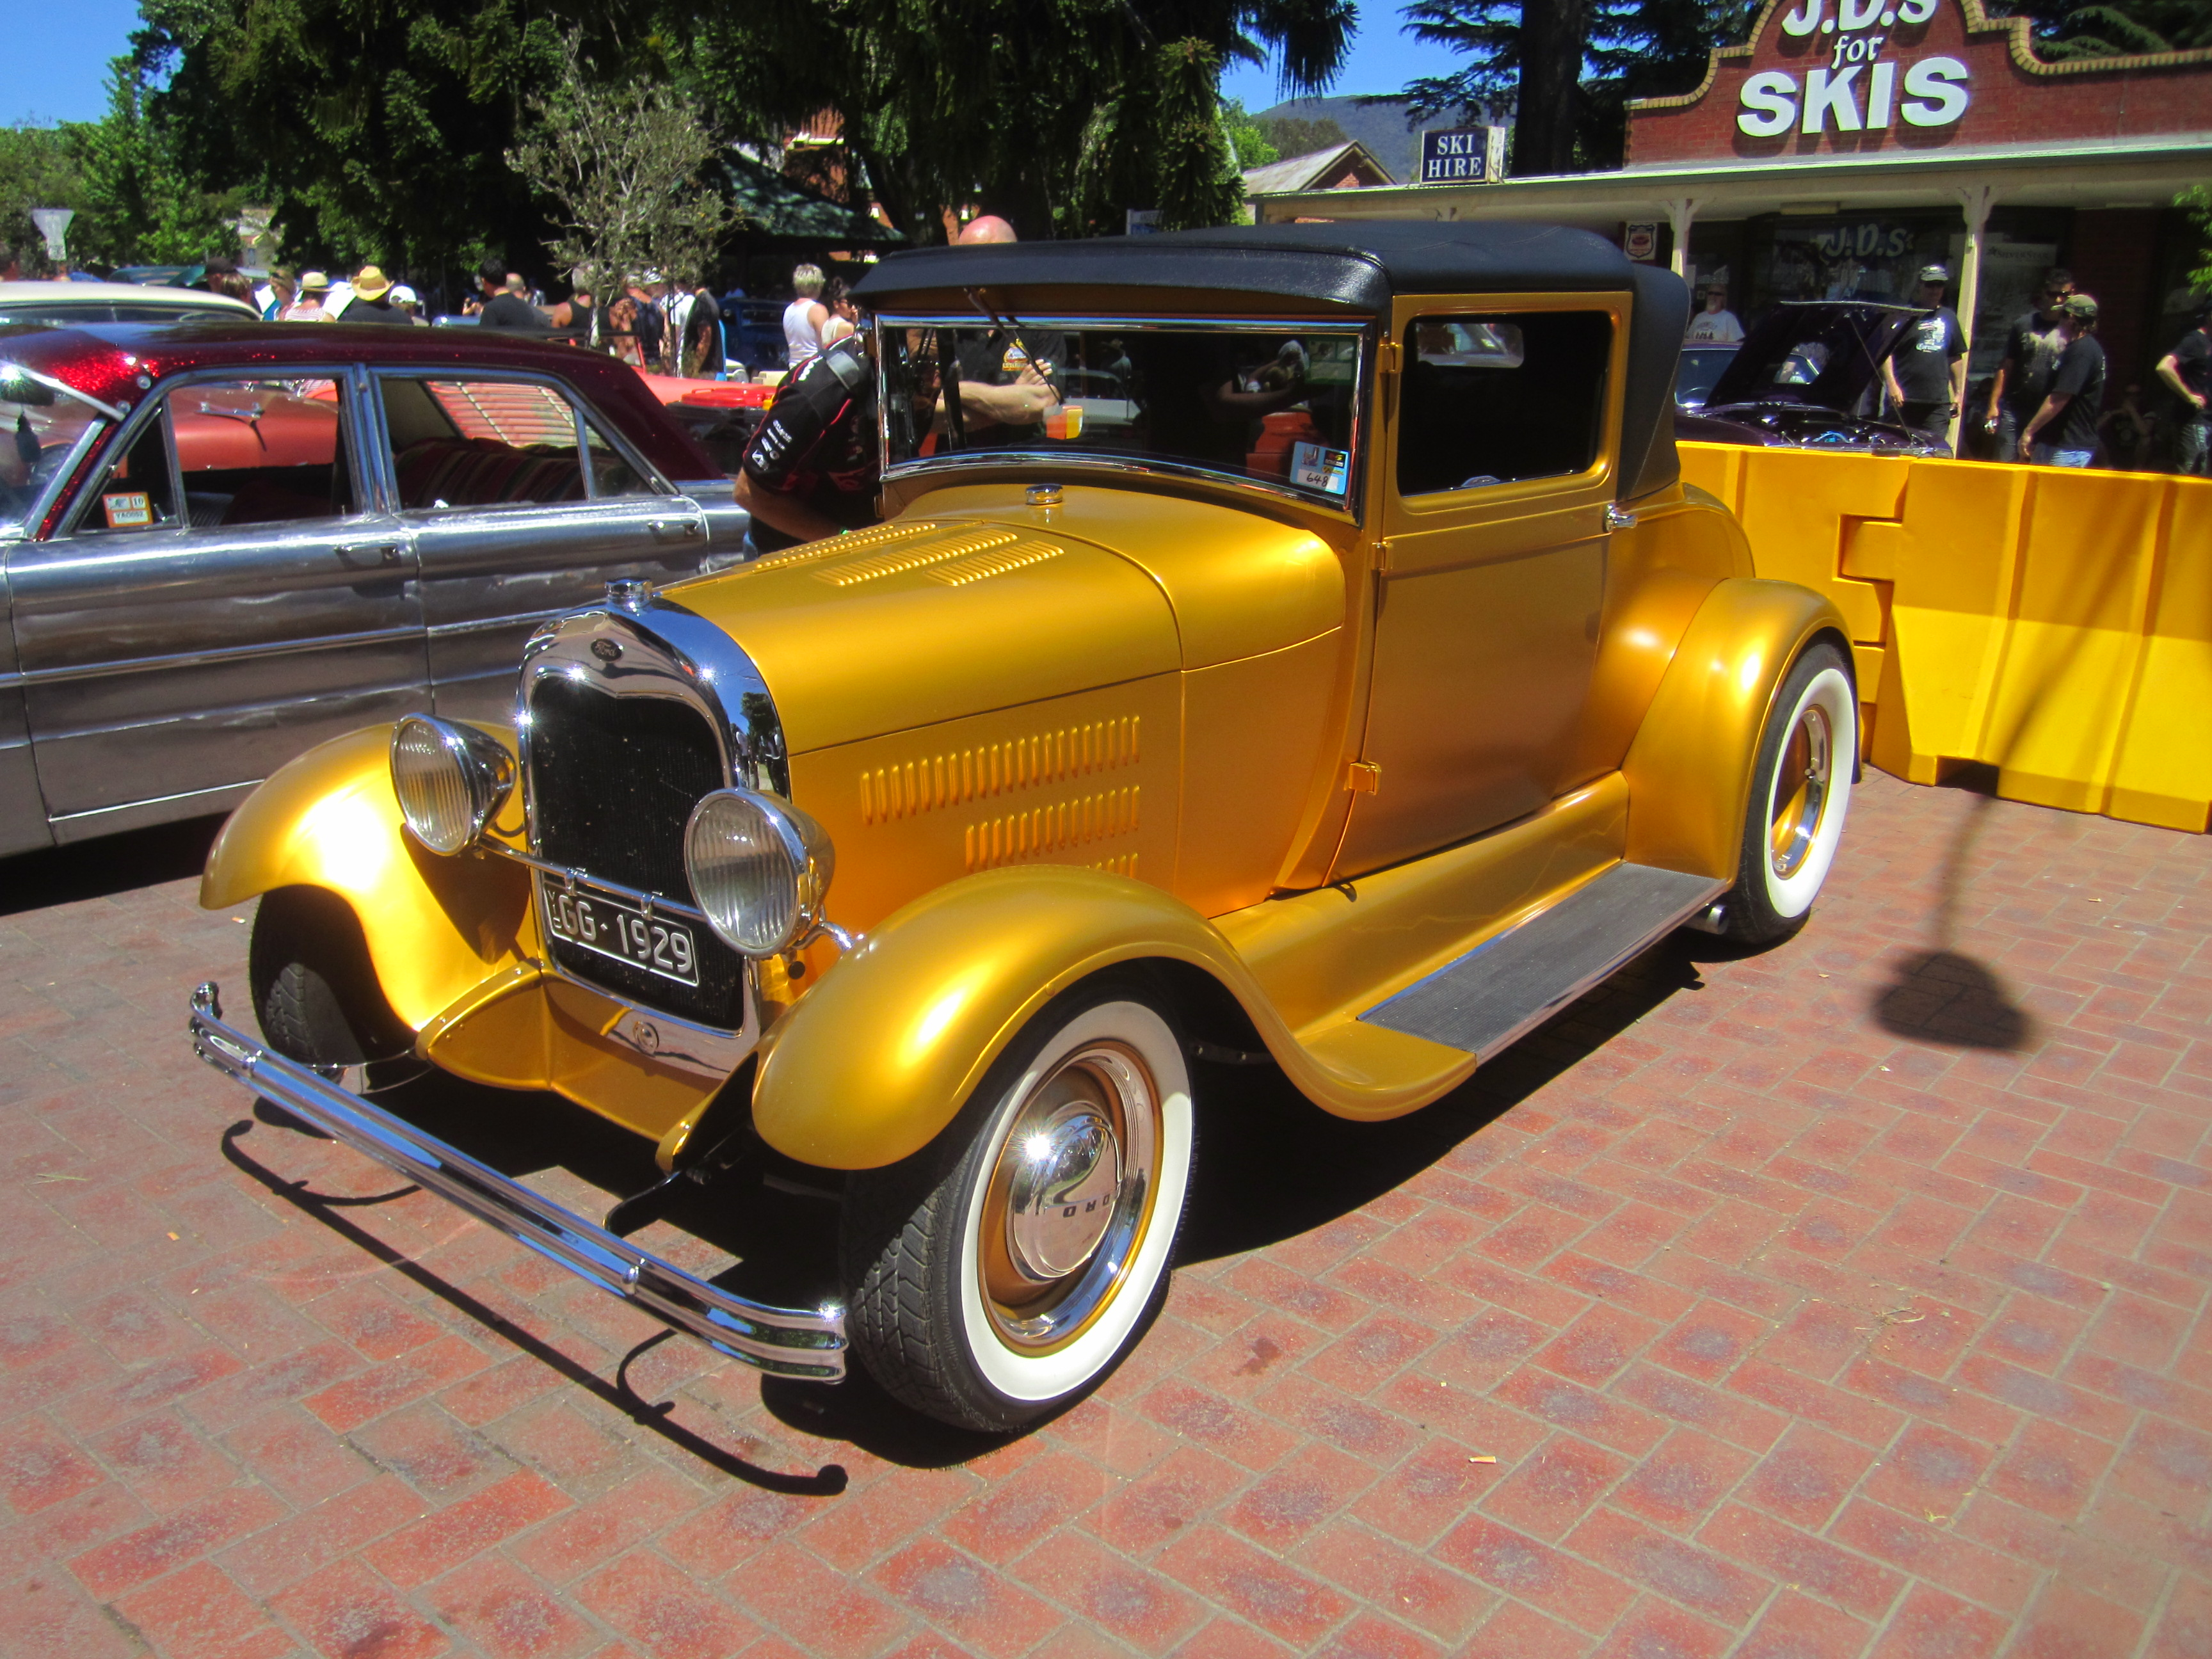 File:1928-29 Model A Cabriolet Hot Rod.jpg - Wikimedia Commons